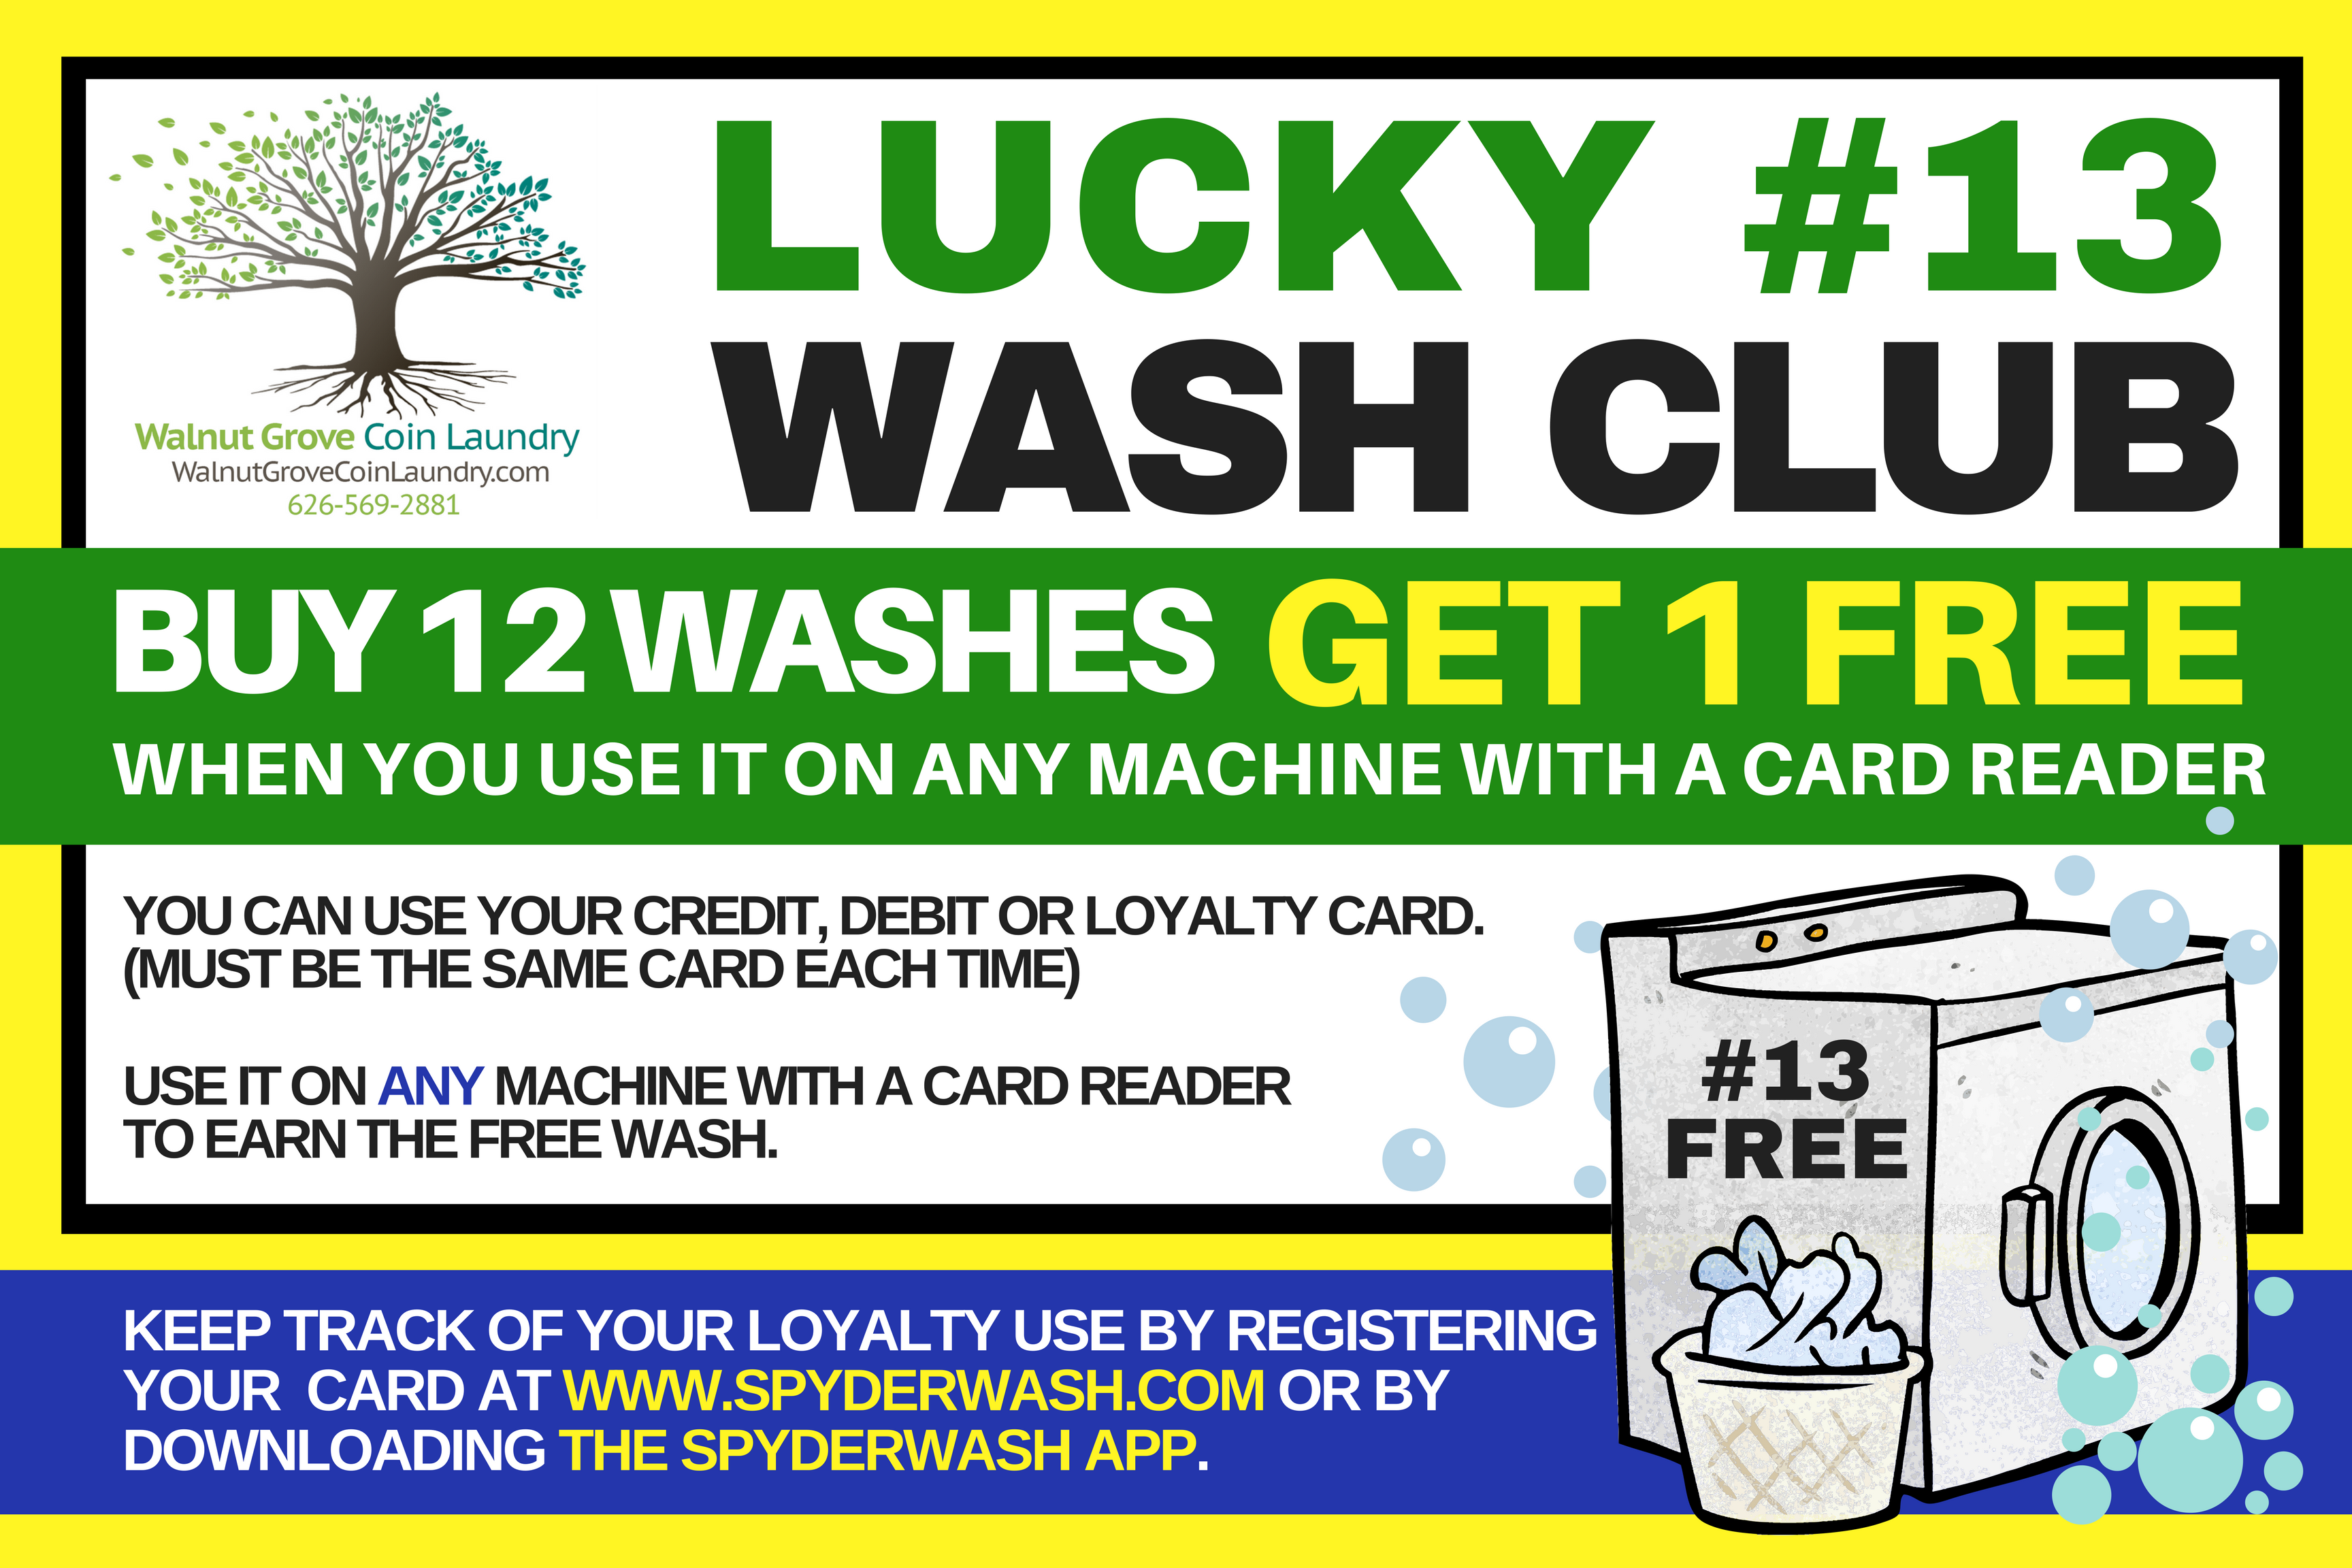 Walnut Grove Coin Laundry Free Wash